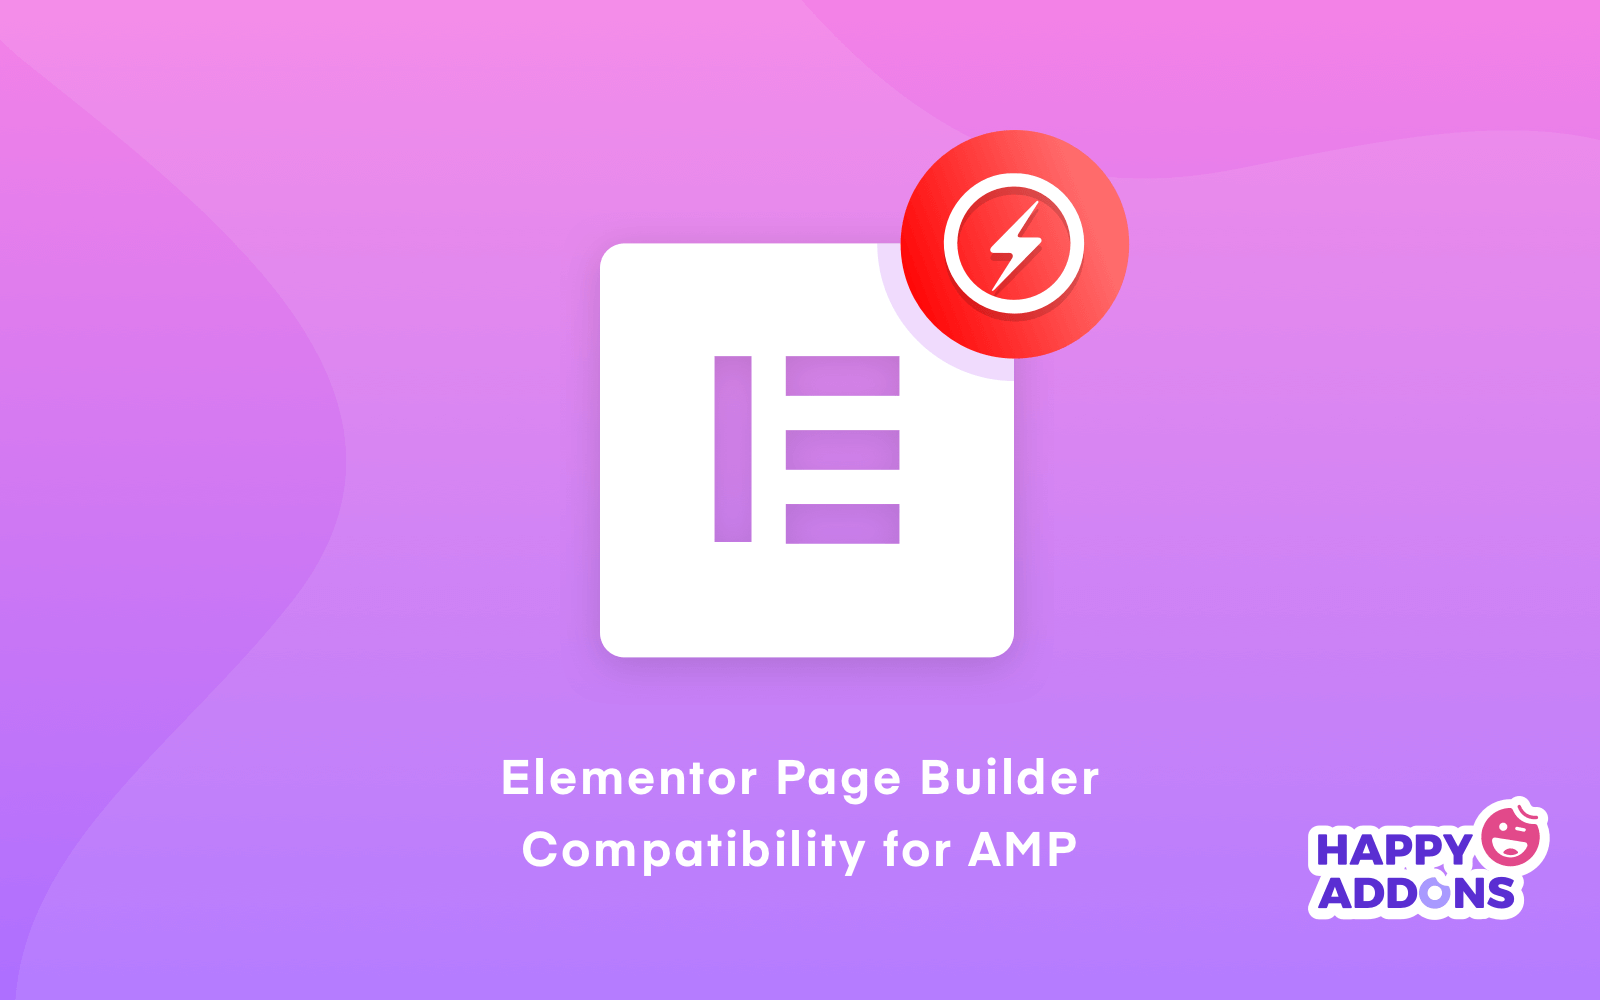 Elementor Page Builder Compatibility for AMP